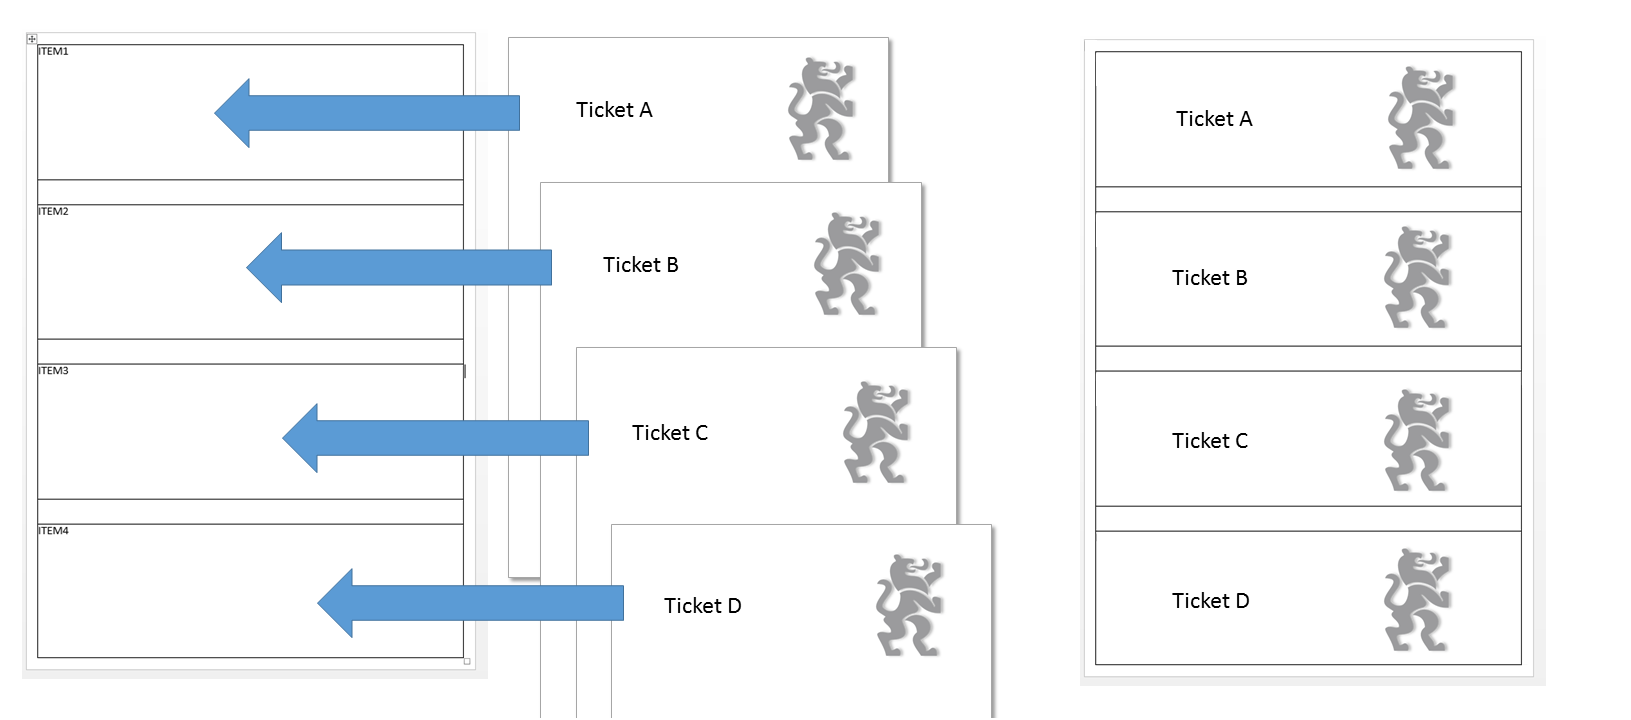 word templates for multiple ticket print m anage com helpdesk when a background picture which is higher than the defined space is used in ticket templates it will be also shown in the gap to the next ticket which is